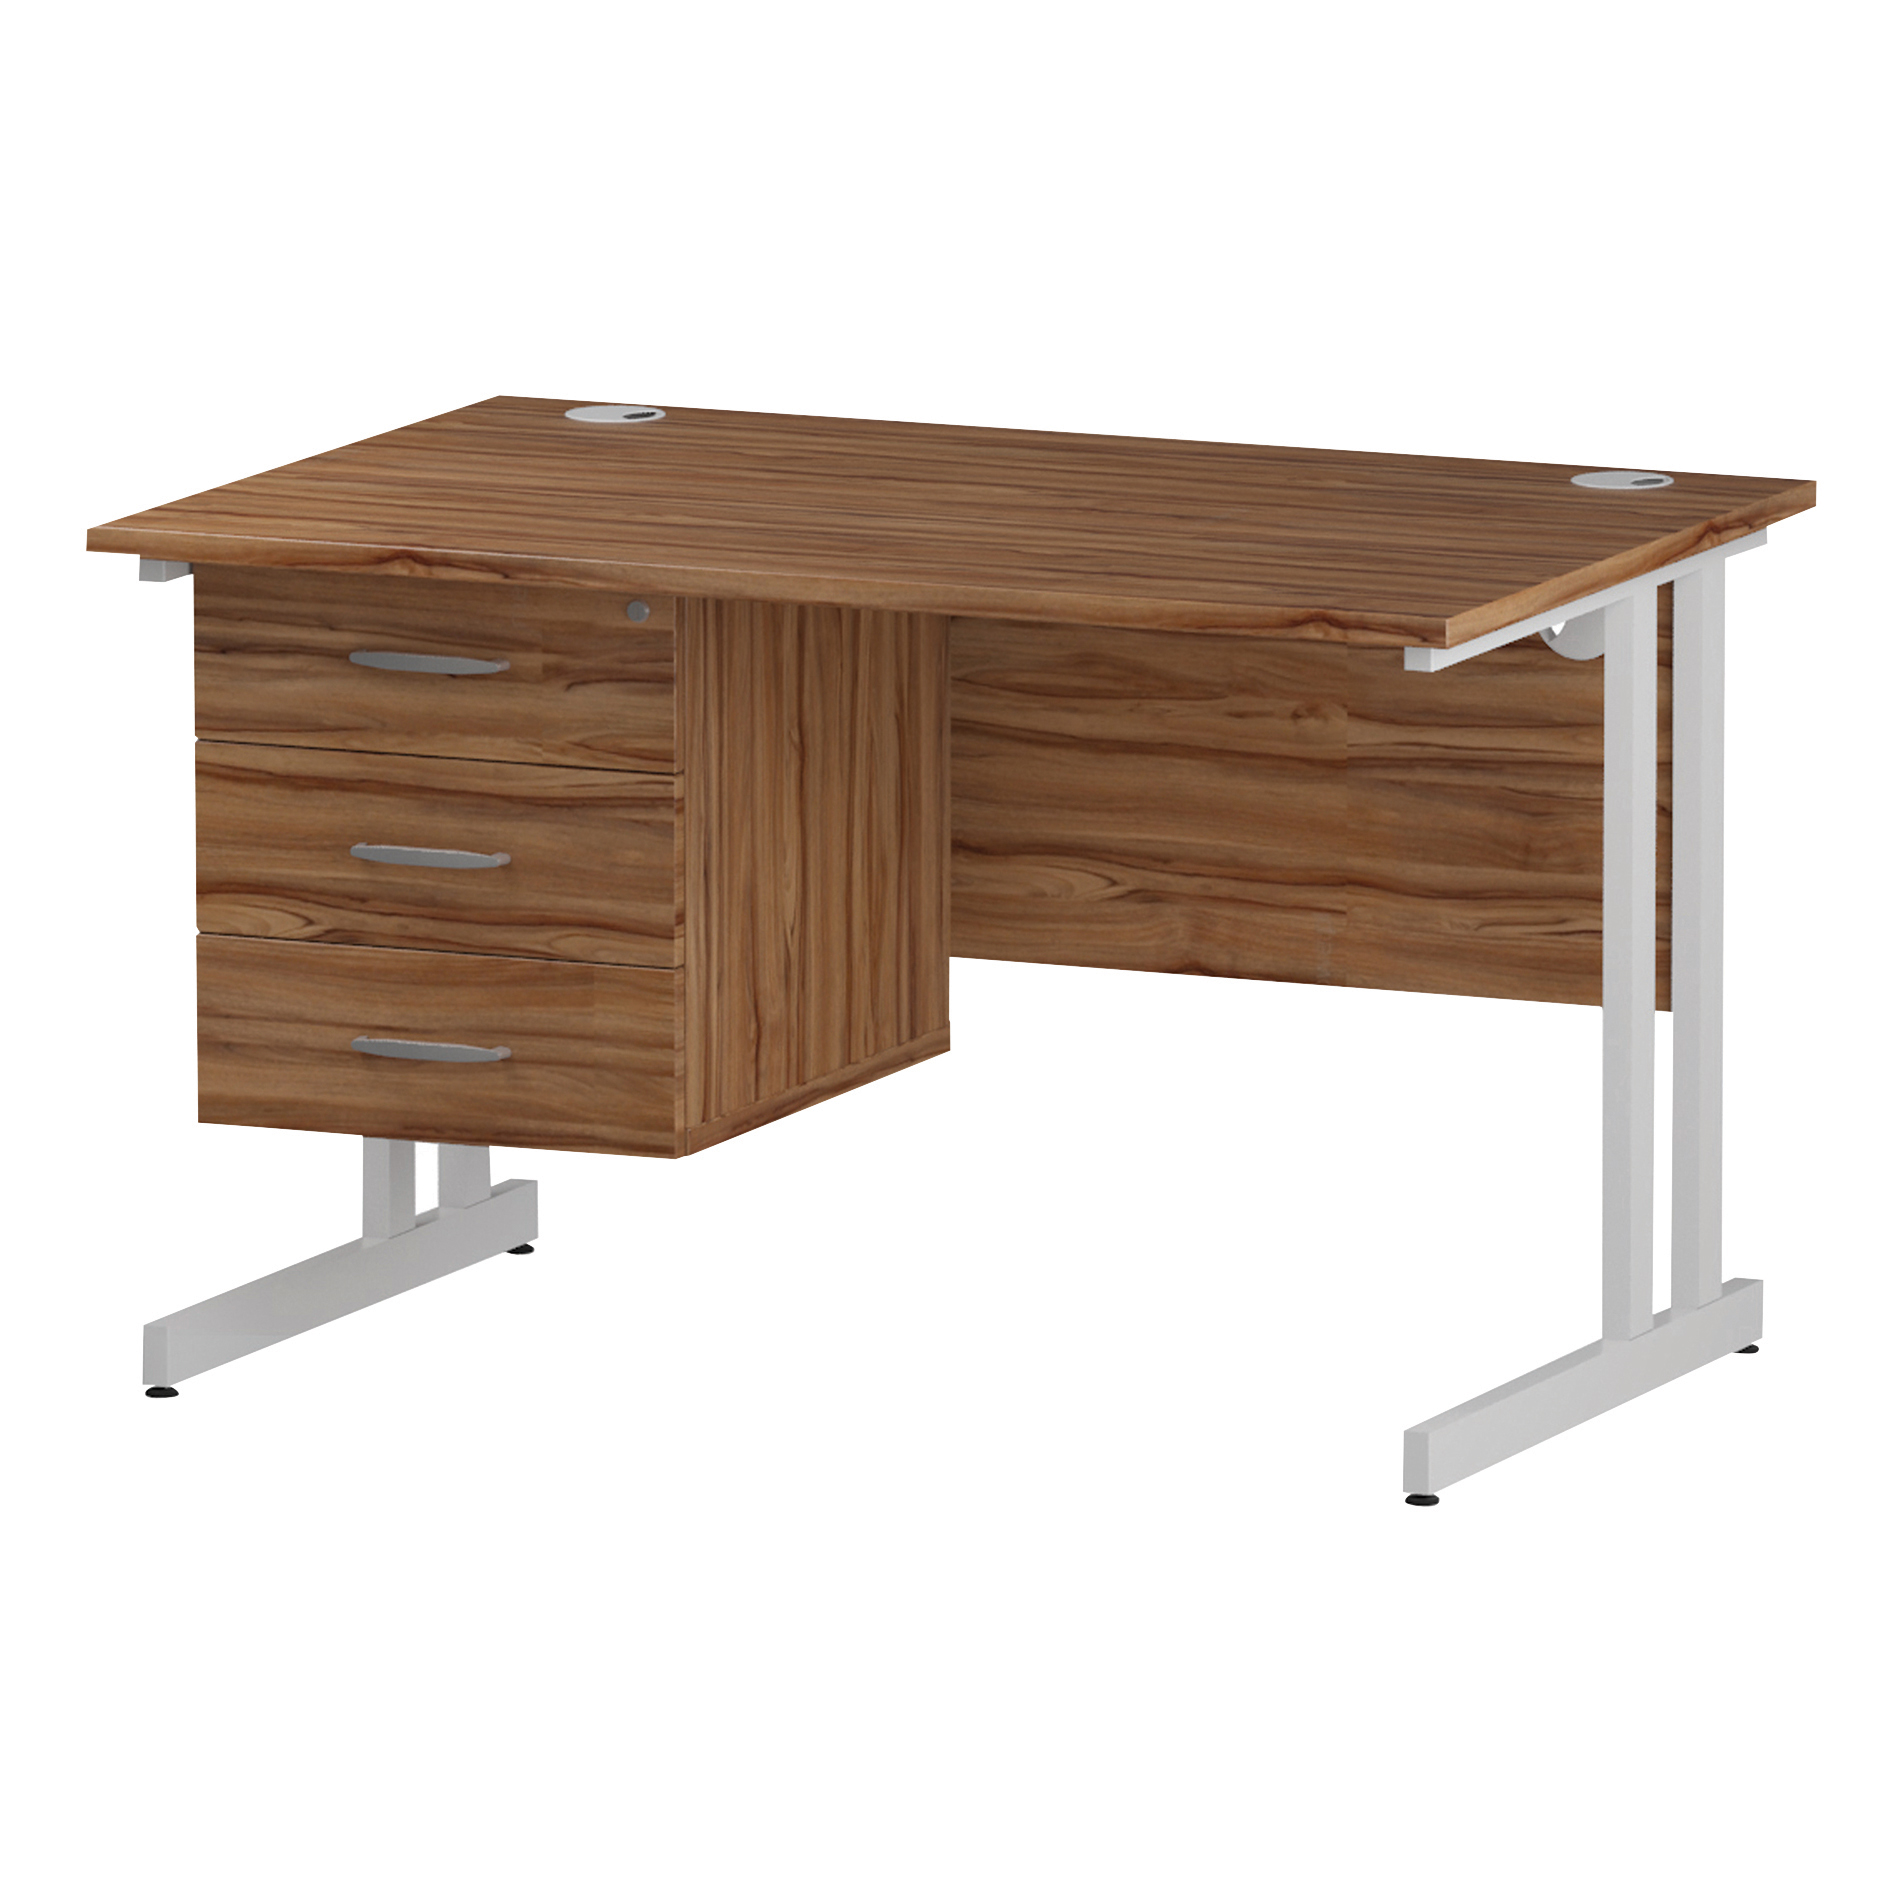 Trexus Rectangular Desk White Cantilever Leg 1200x800mm Fixed Pedestal 3 Drawers Walnut Ref I001931